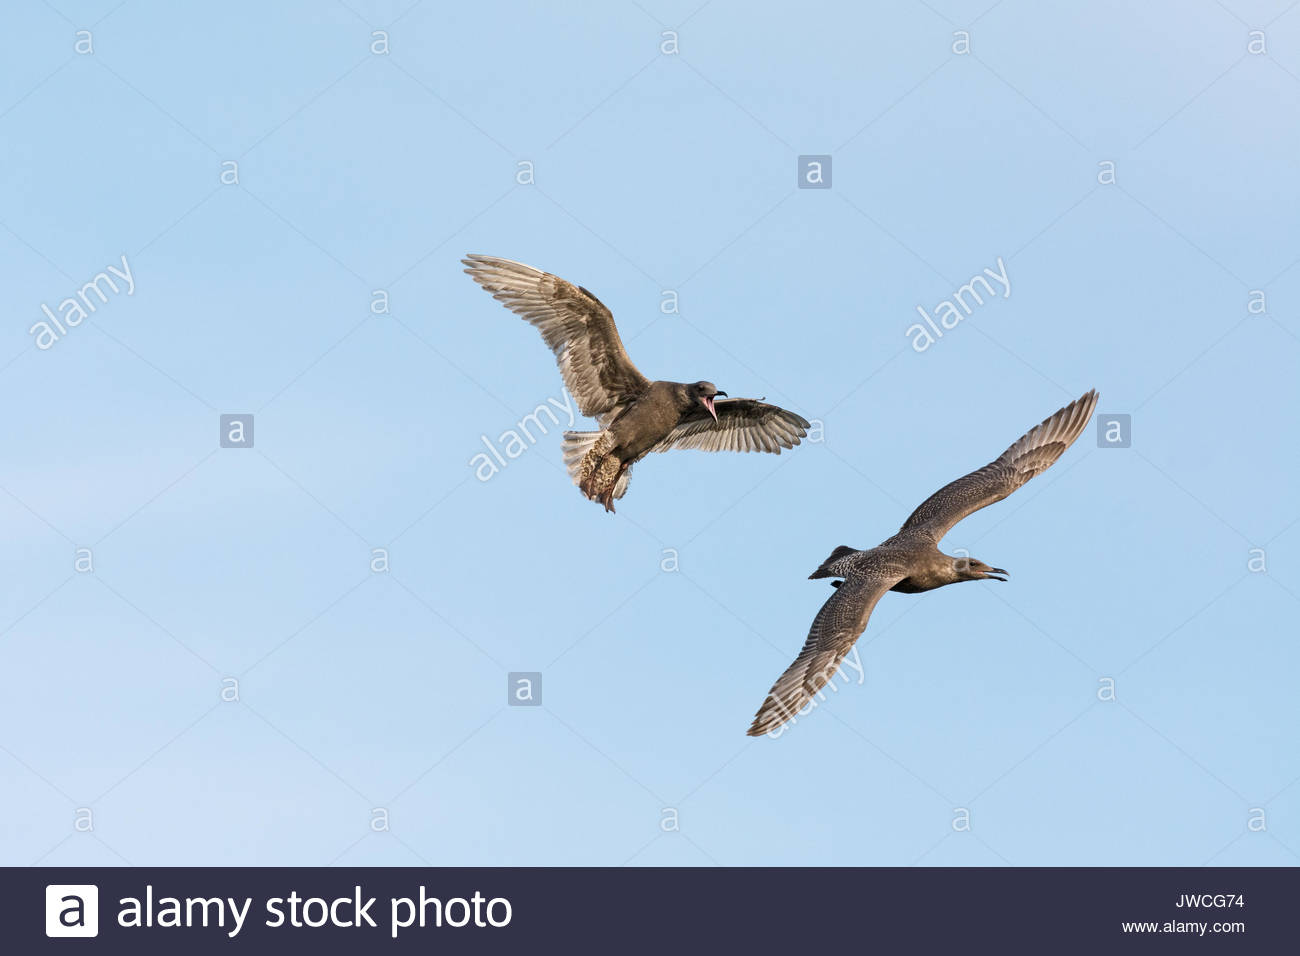 A pair of squawking Juvenile Black-billed gulls in flight. - Stock Image